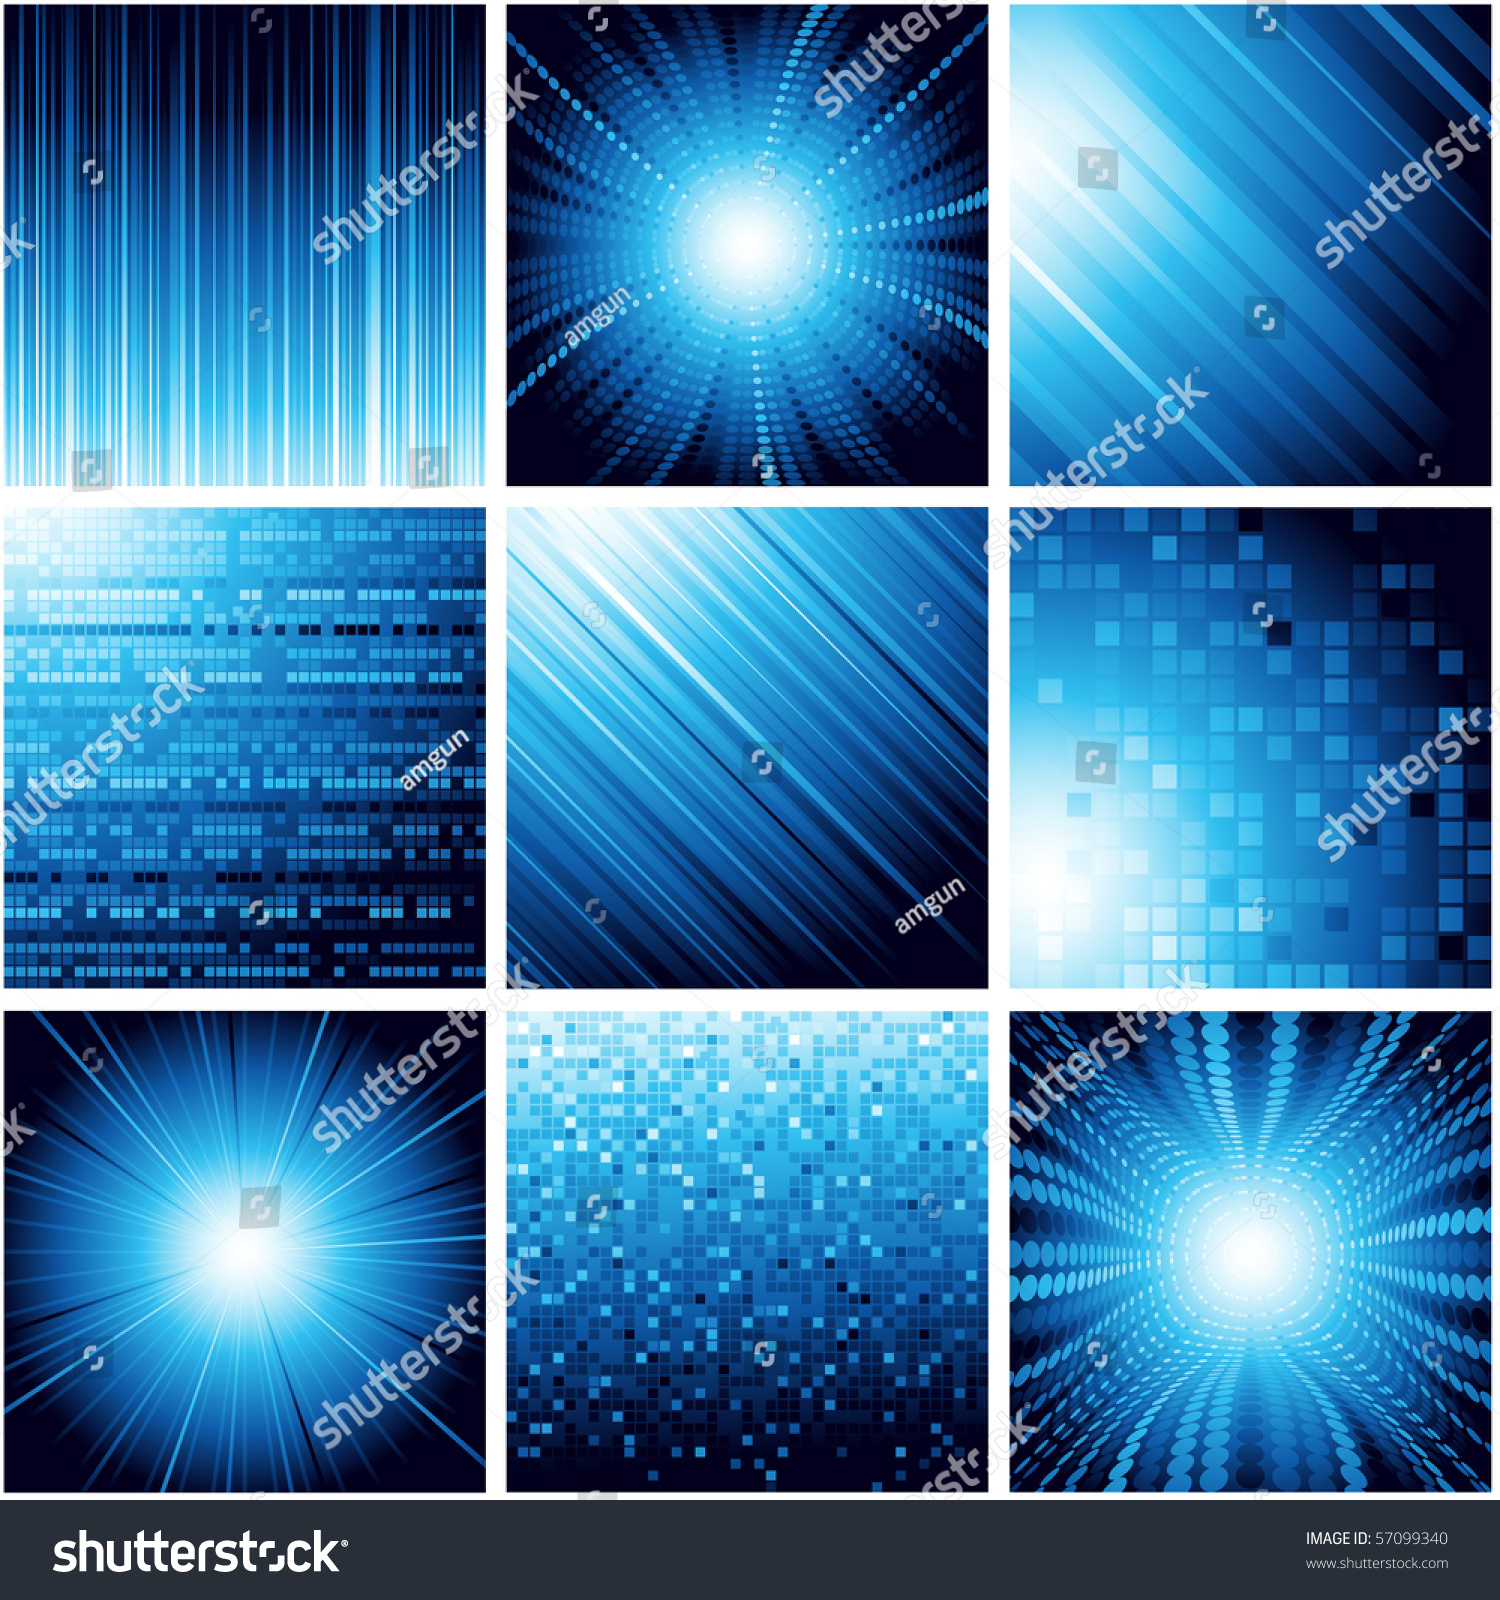 Collection Of Abstract Backgrounds In Blue Color. Vector